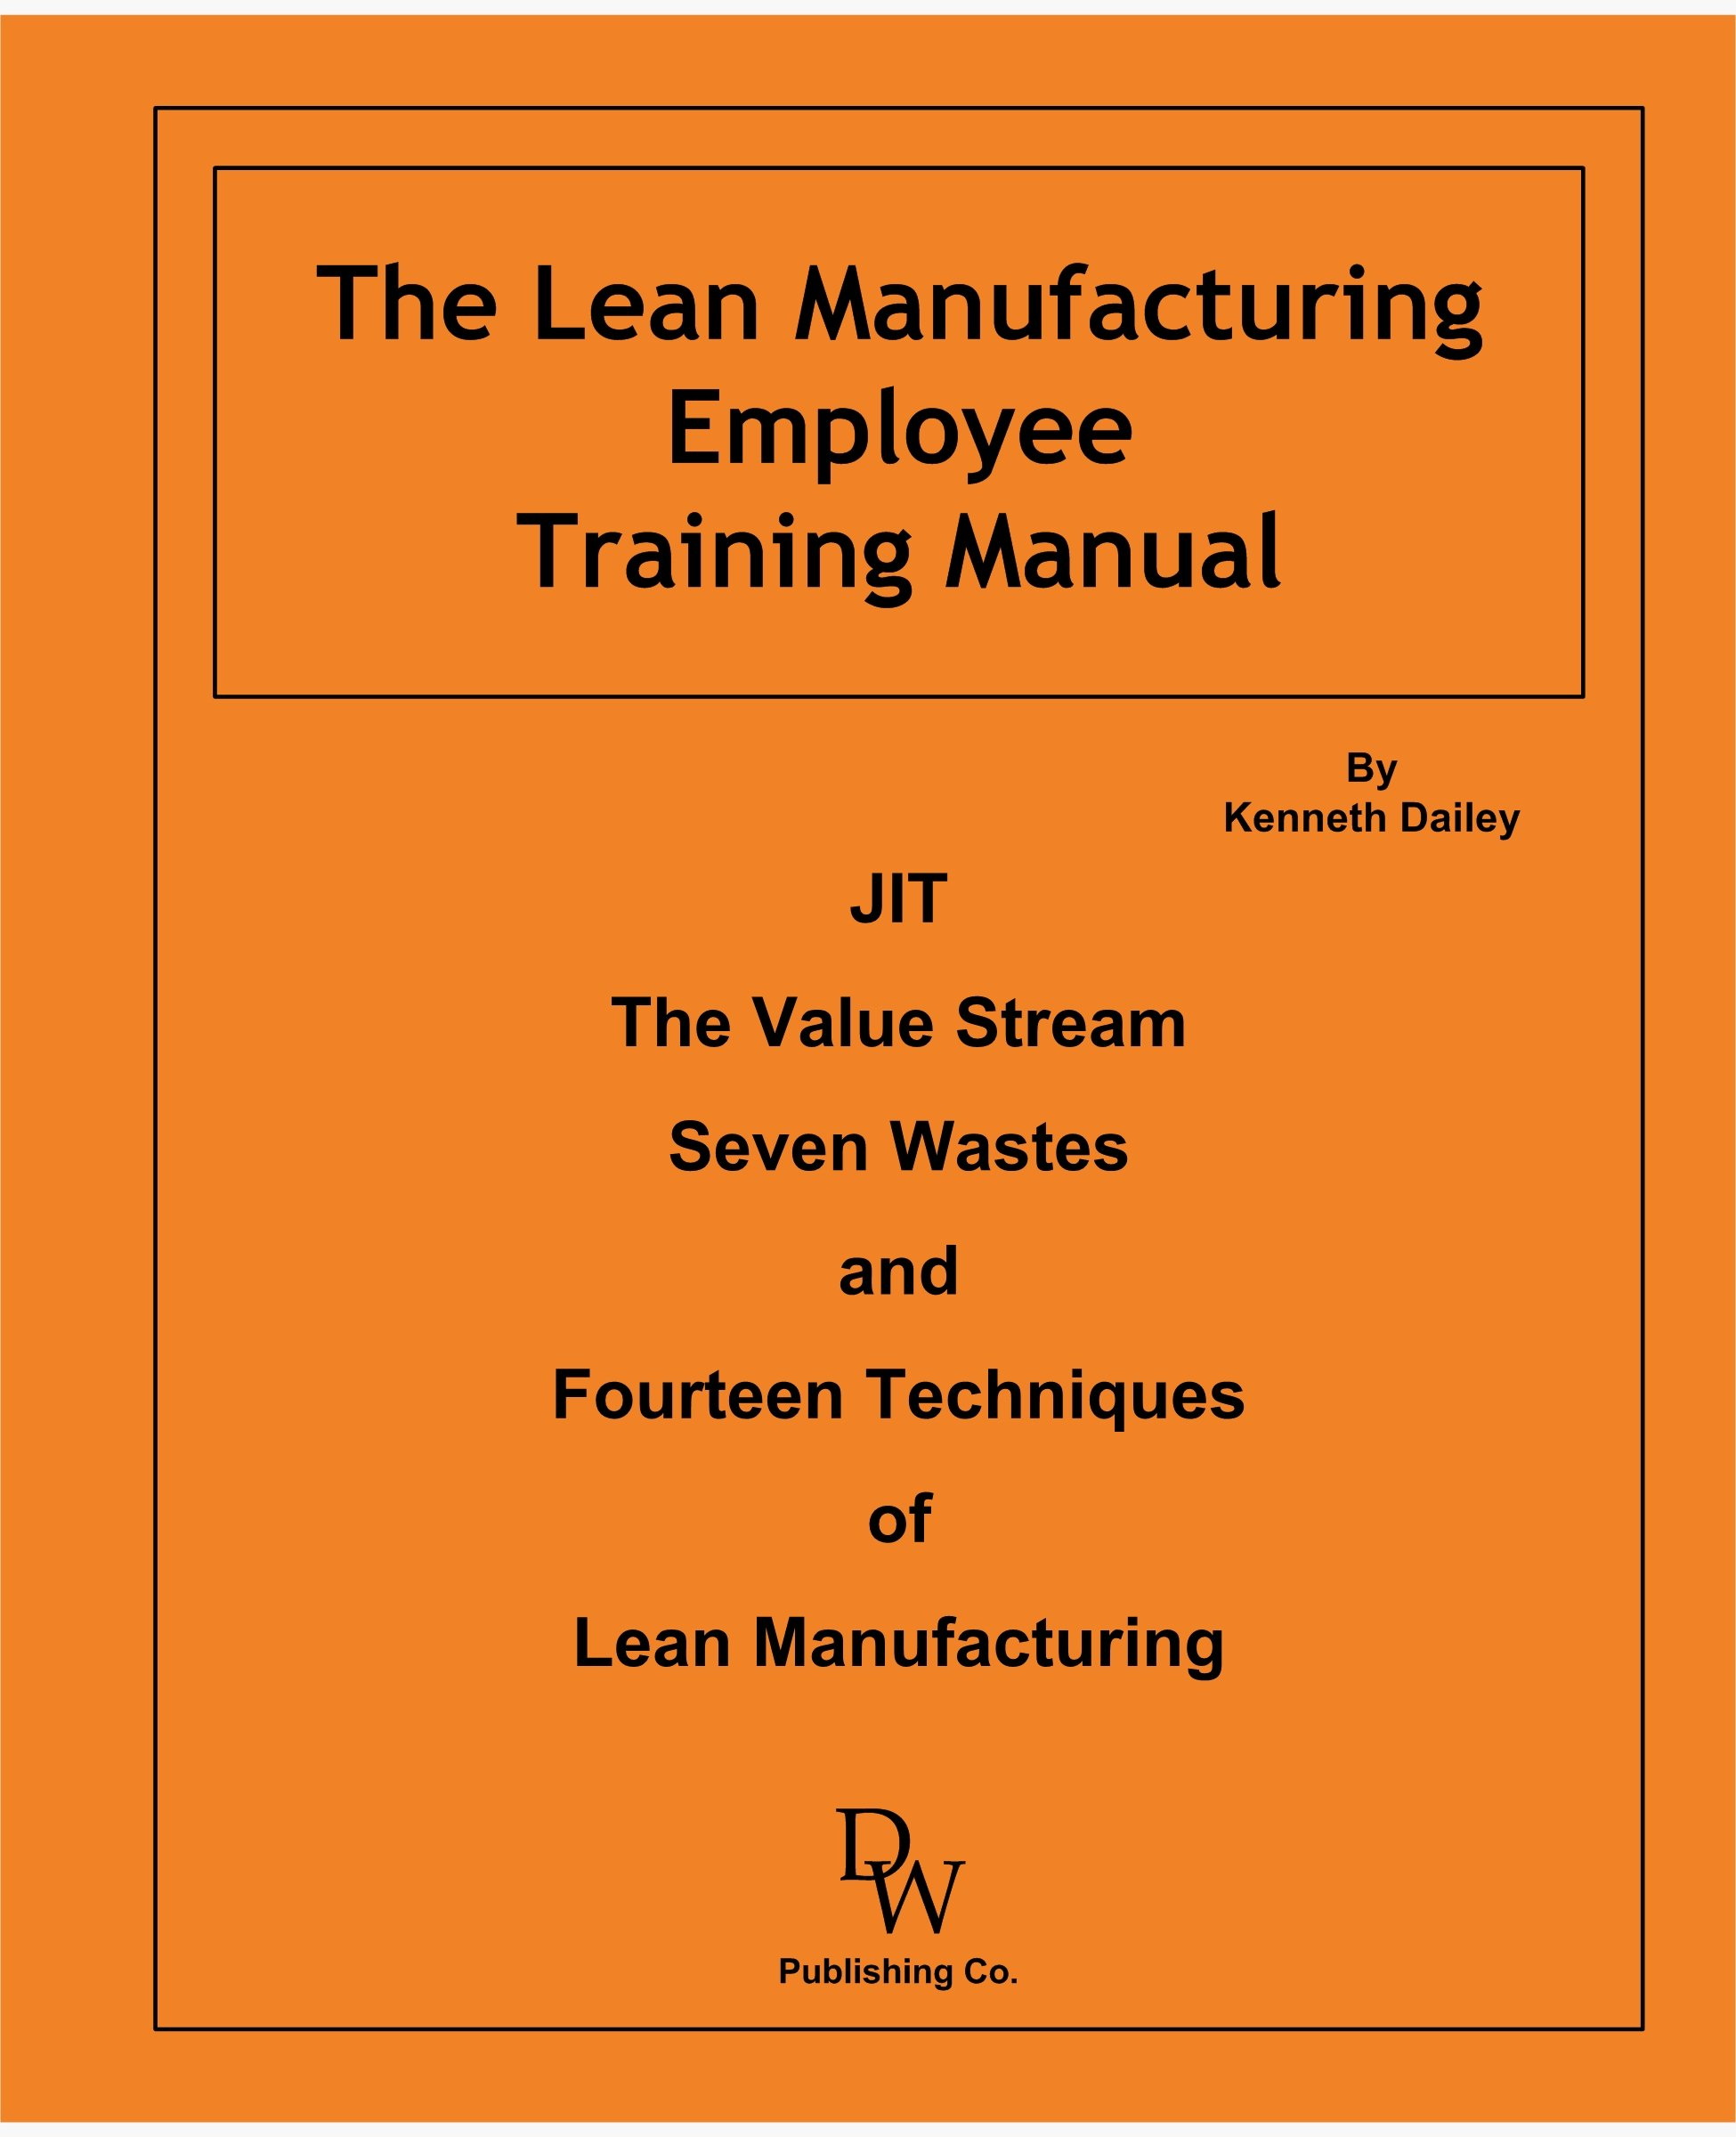 Amazon.com: The Lean Manufacturing Employee Training Manual  (9780974722146): Kenneth W. Dailey: Books